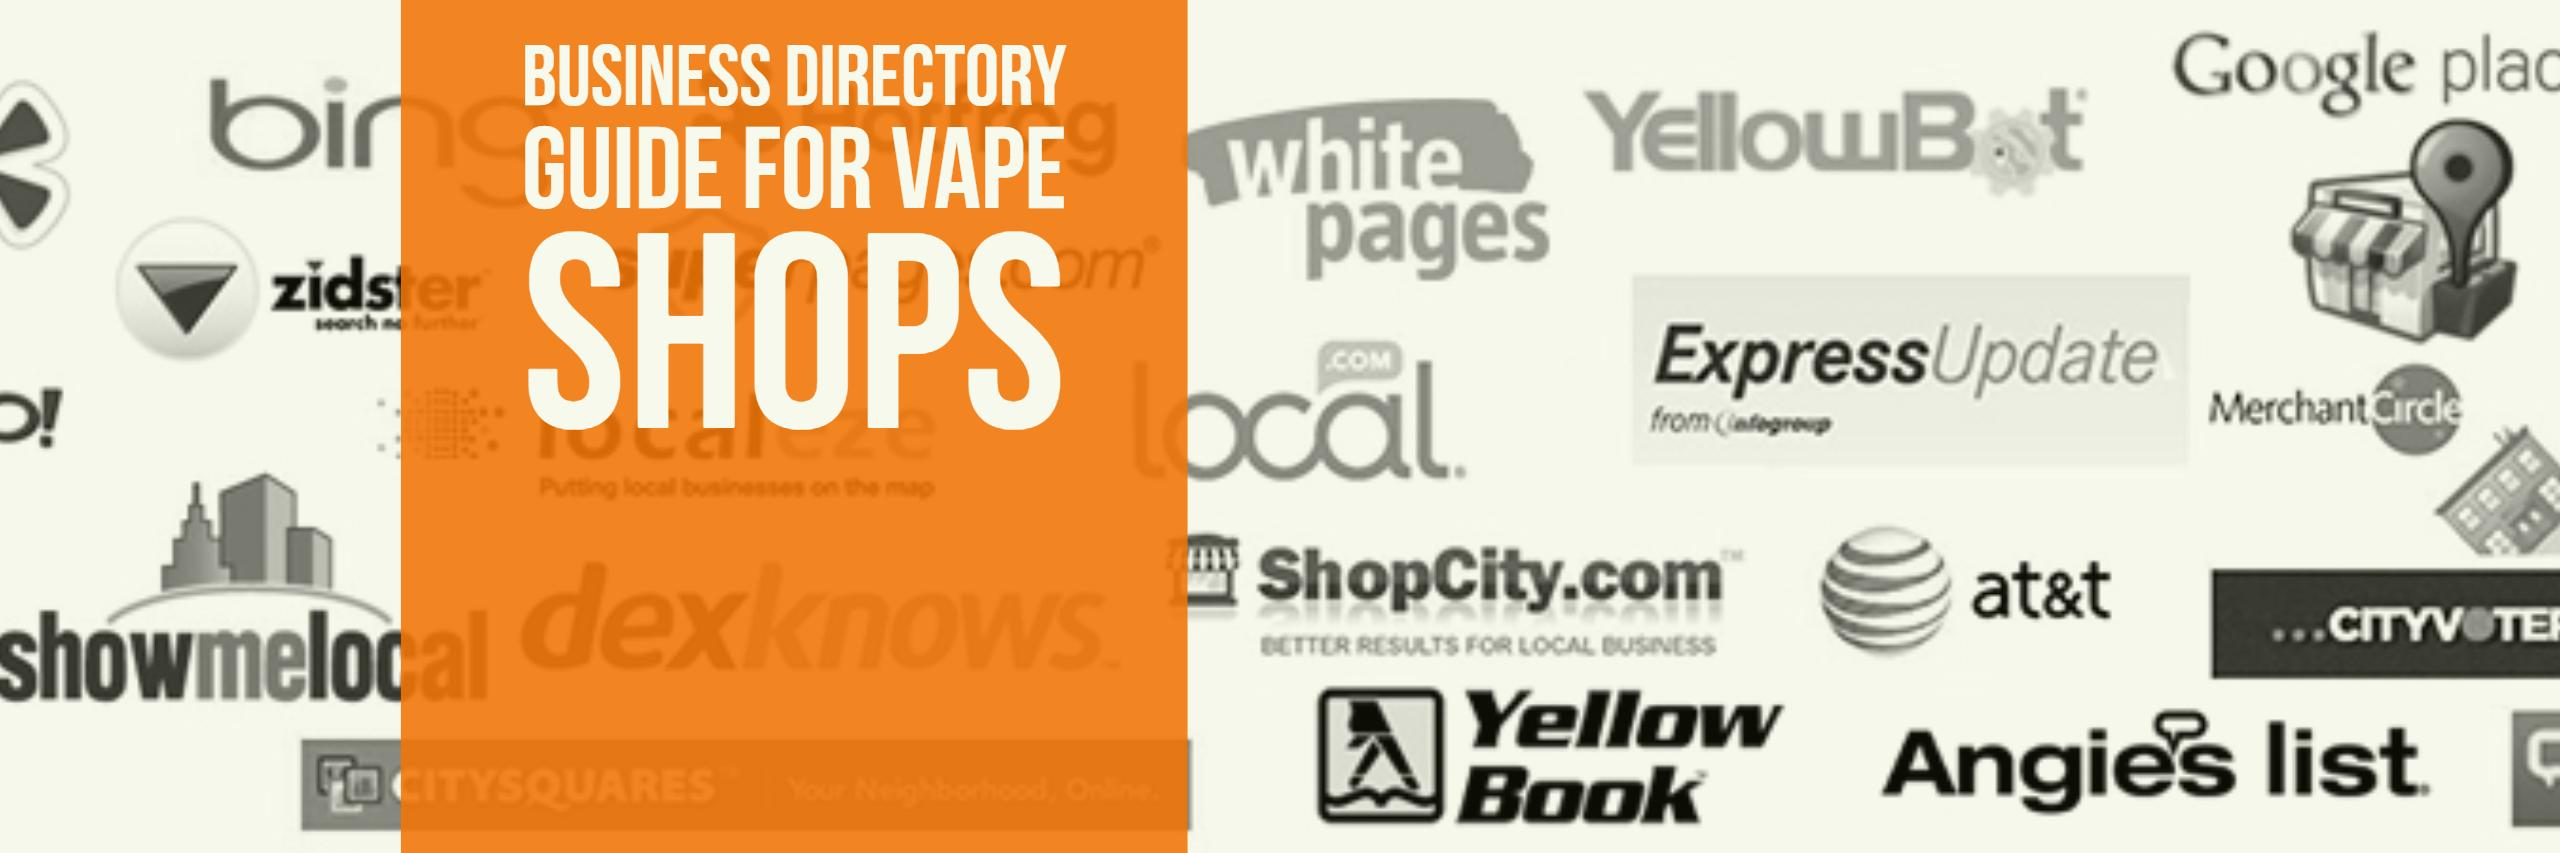 Business Directory Guide Vape Shops